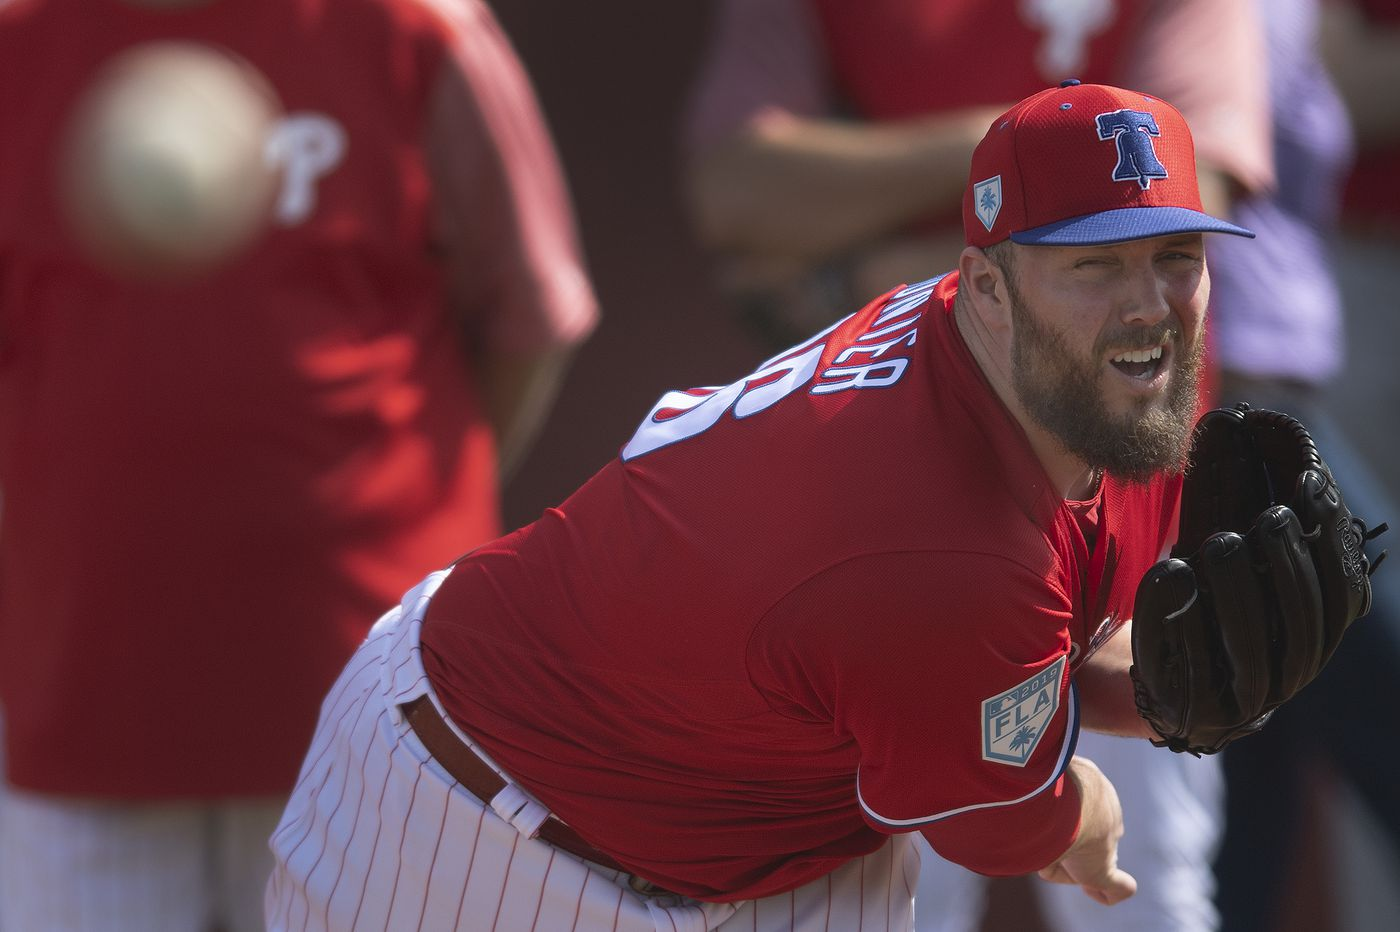 Phillies relief pitcher Tommy Hunter out with a flexor strain